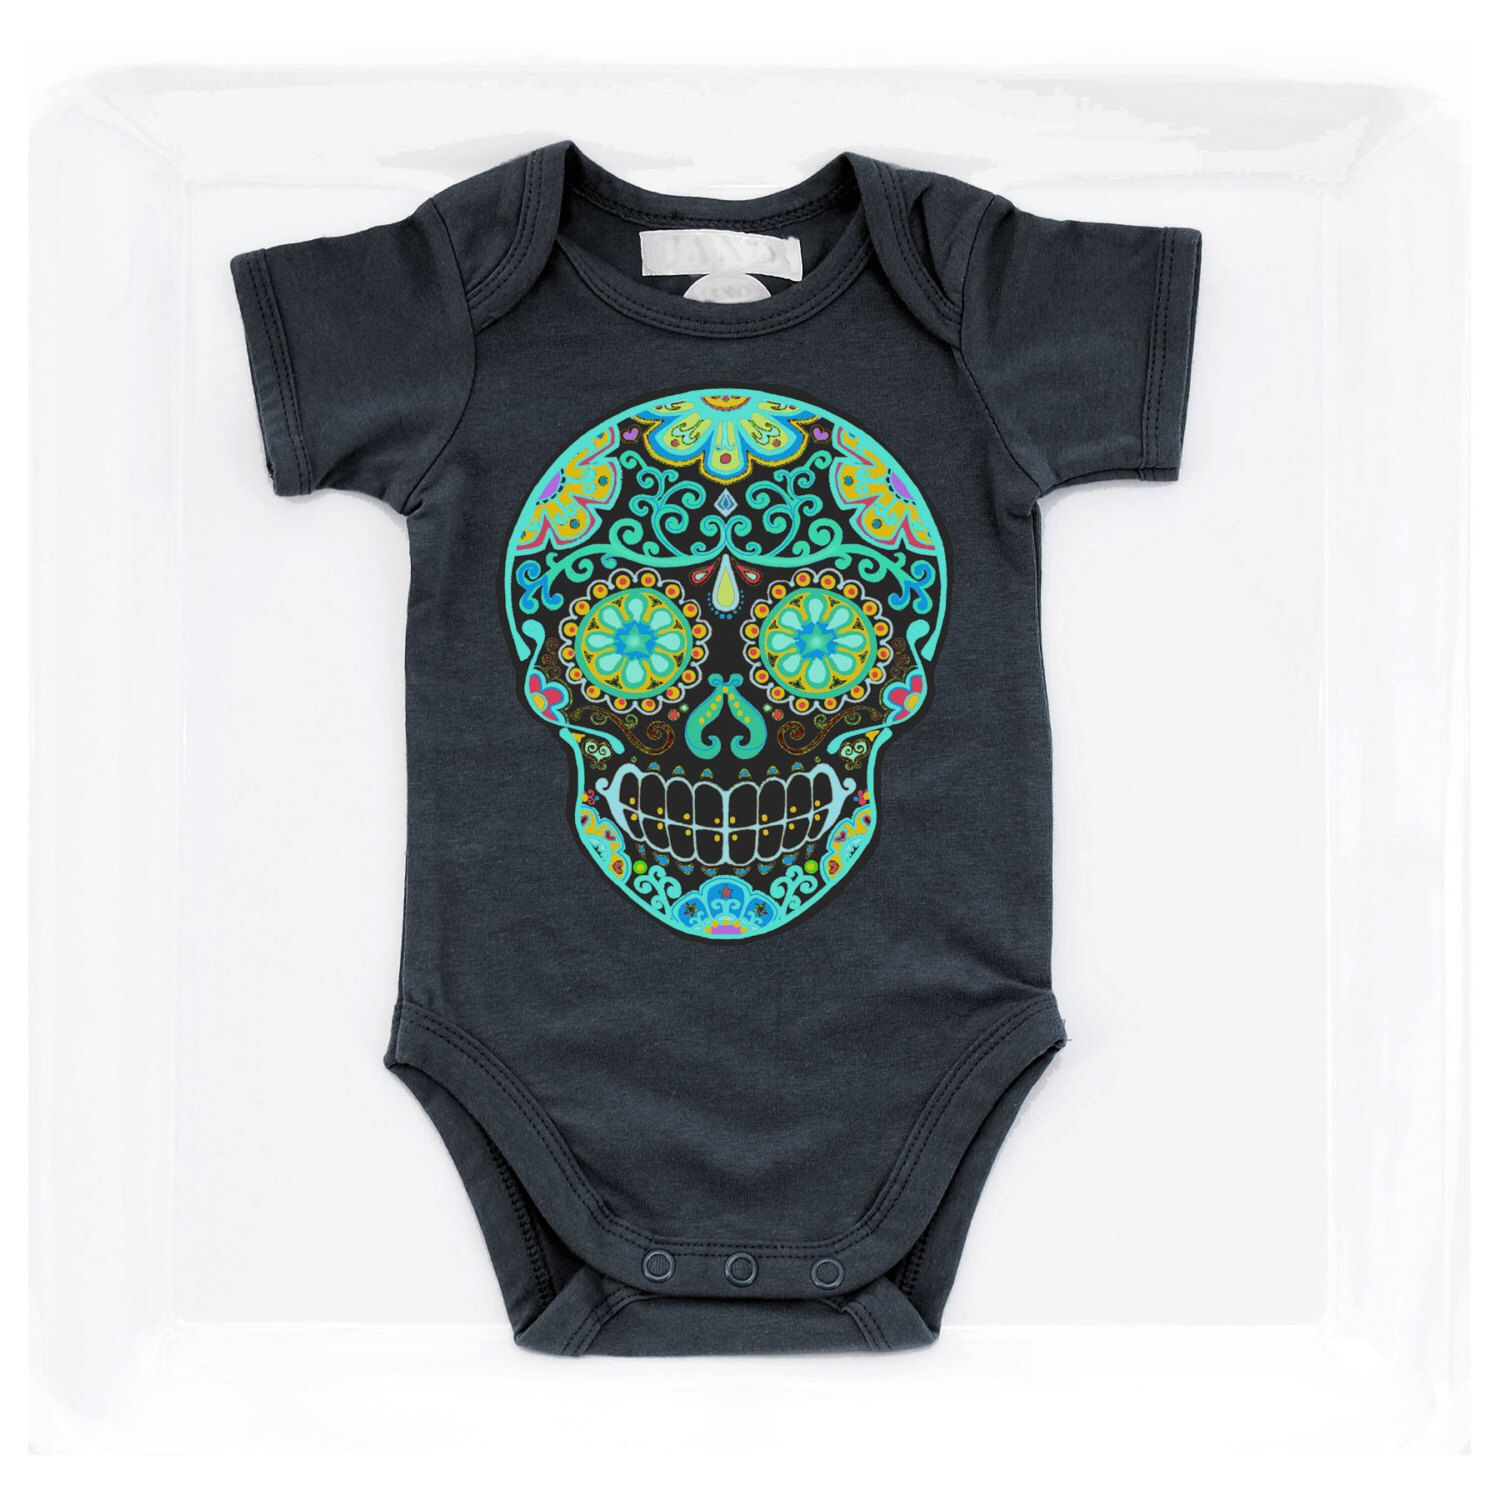 Black Day of the Dead Skull Baby Clothes Rockabilly Tattoo